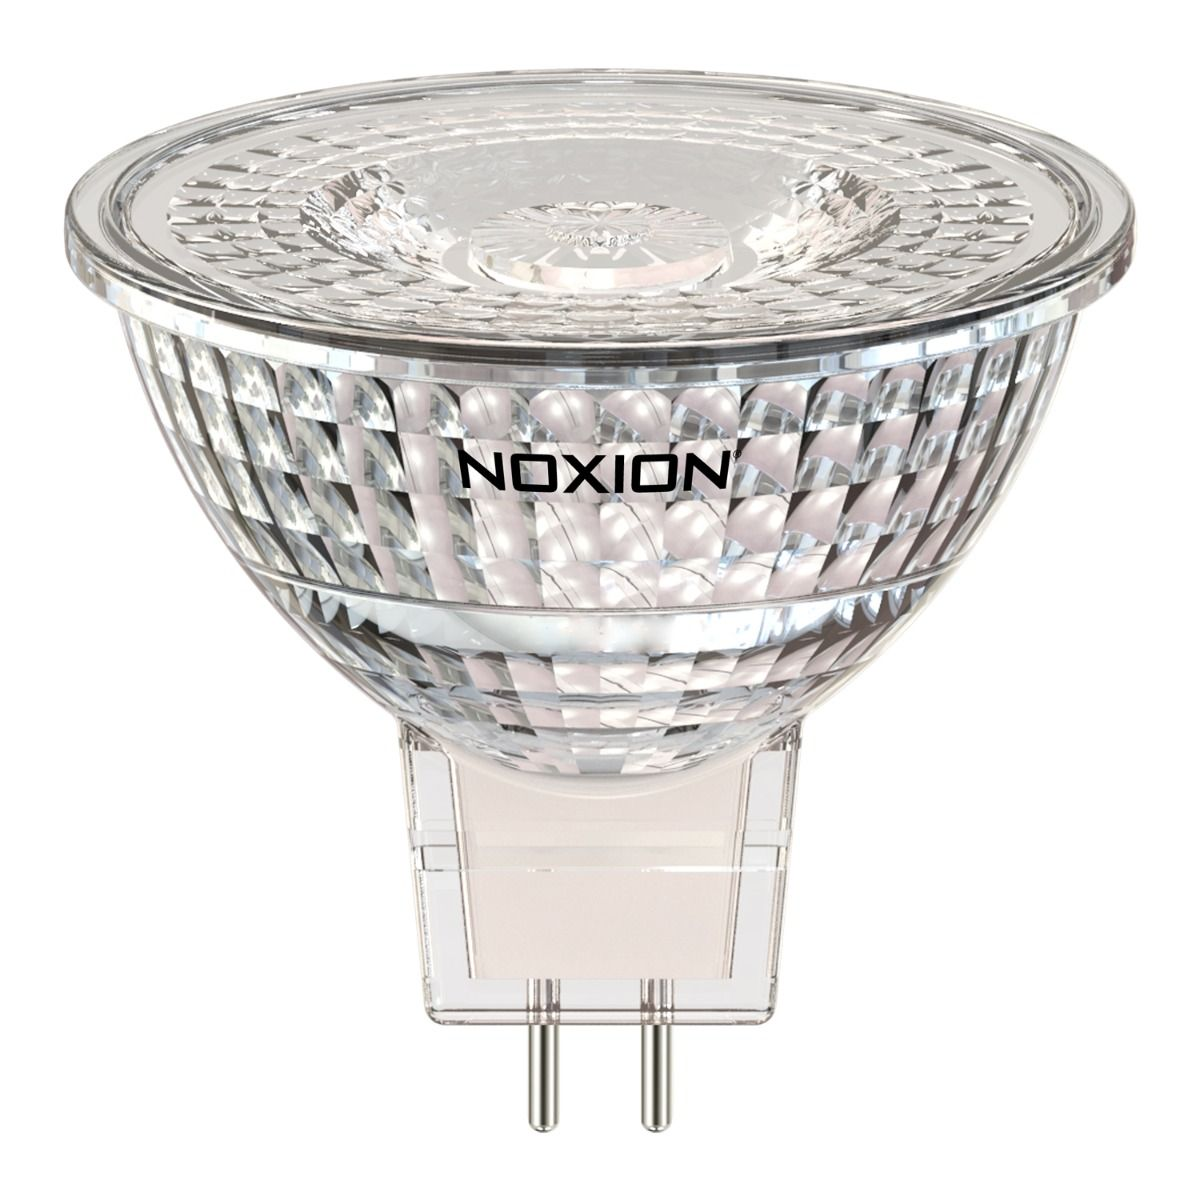 Noxion LED Spot GU5.3 4.5W 827 36D 400lm | Replacer for 35W